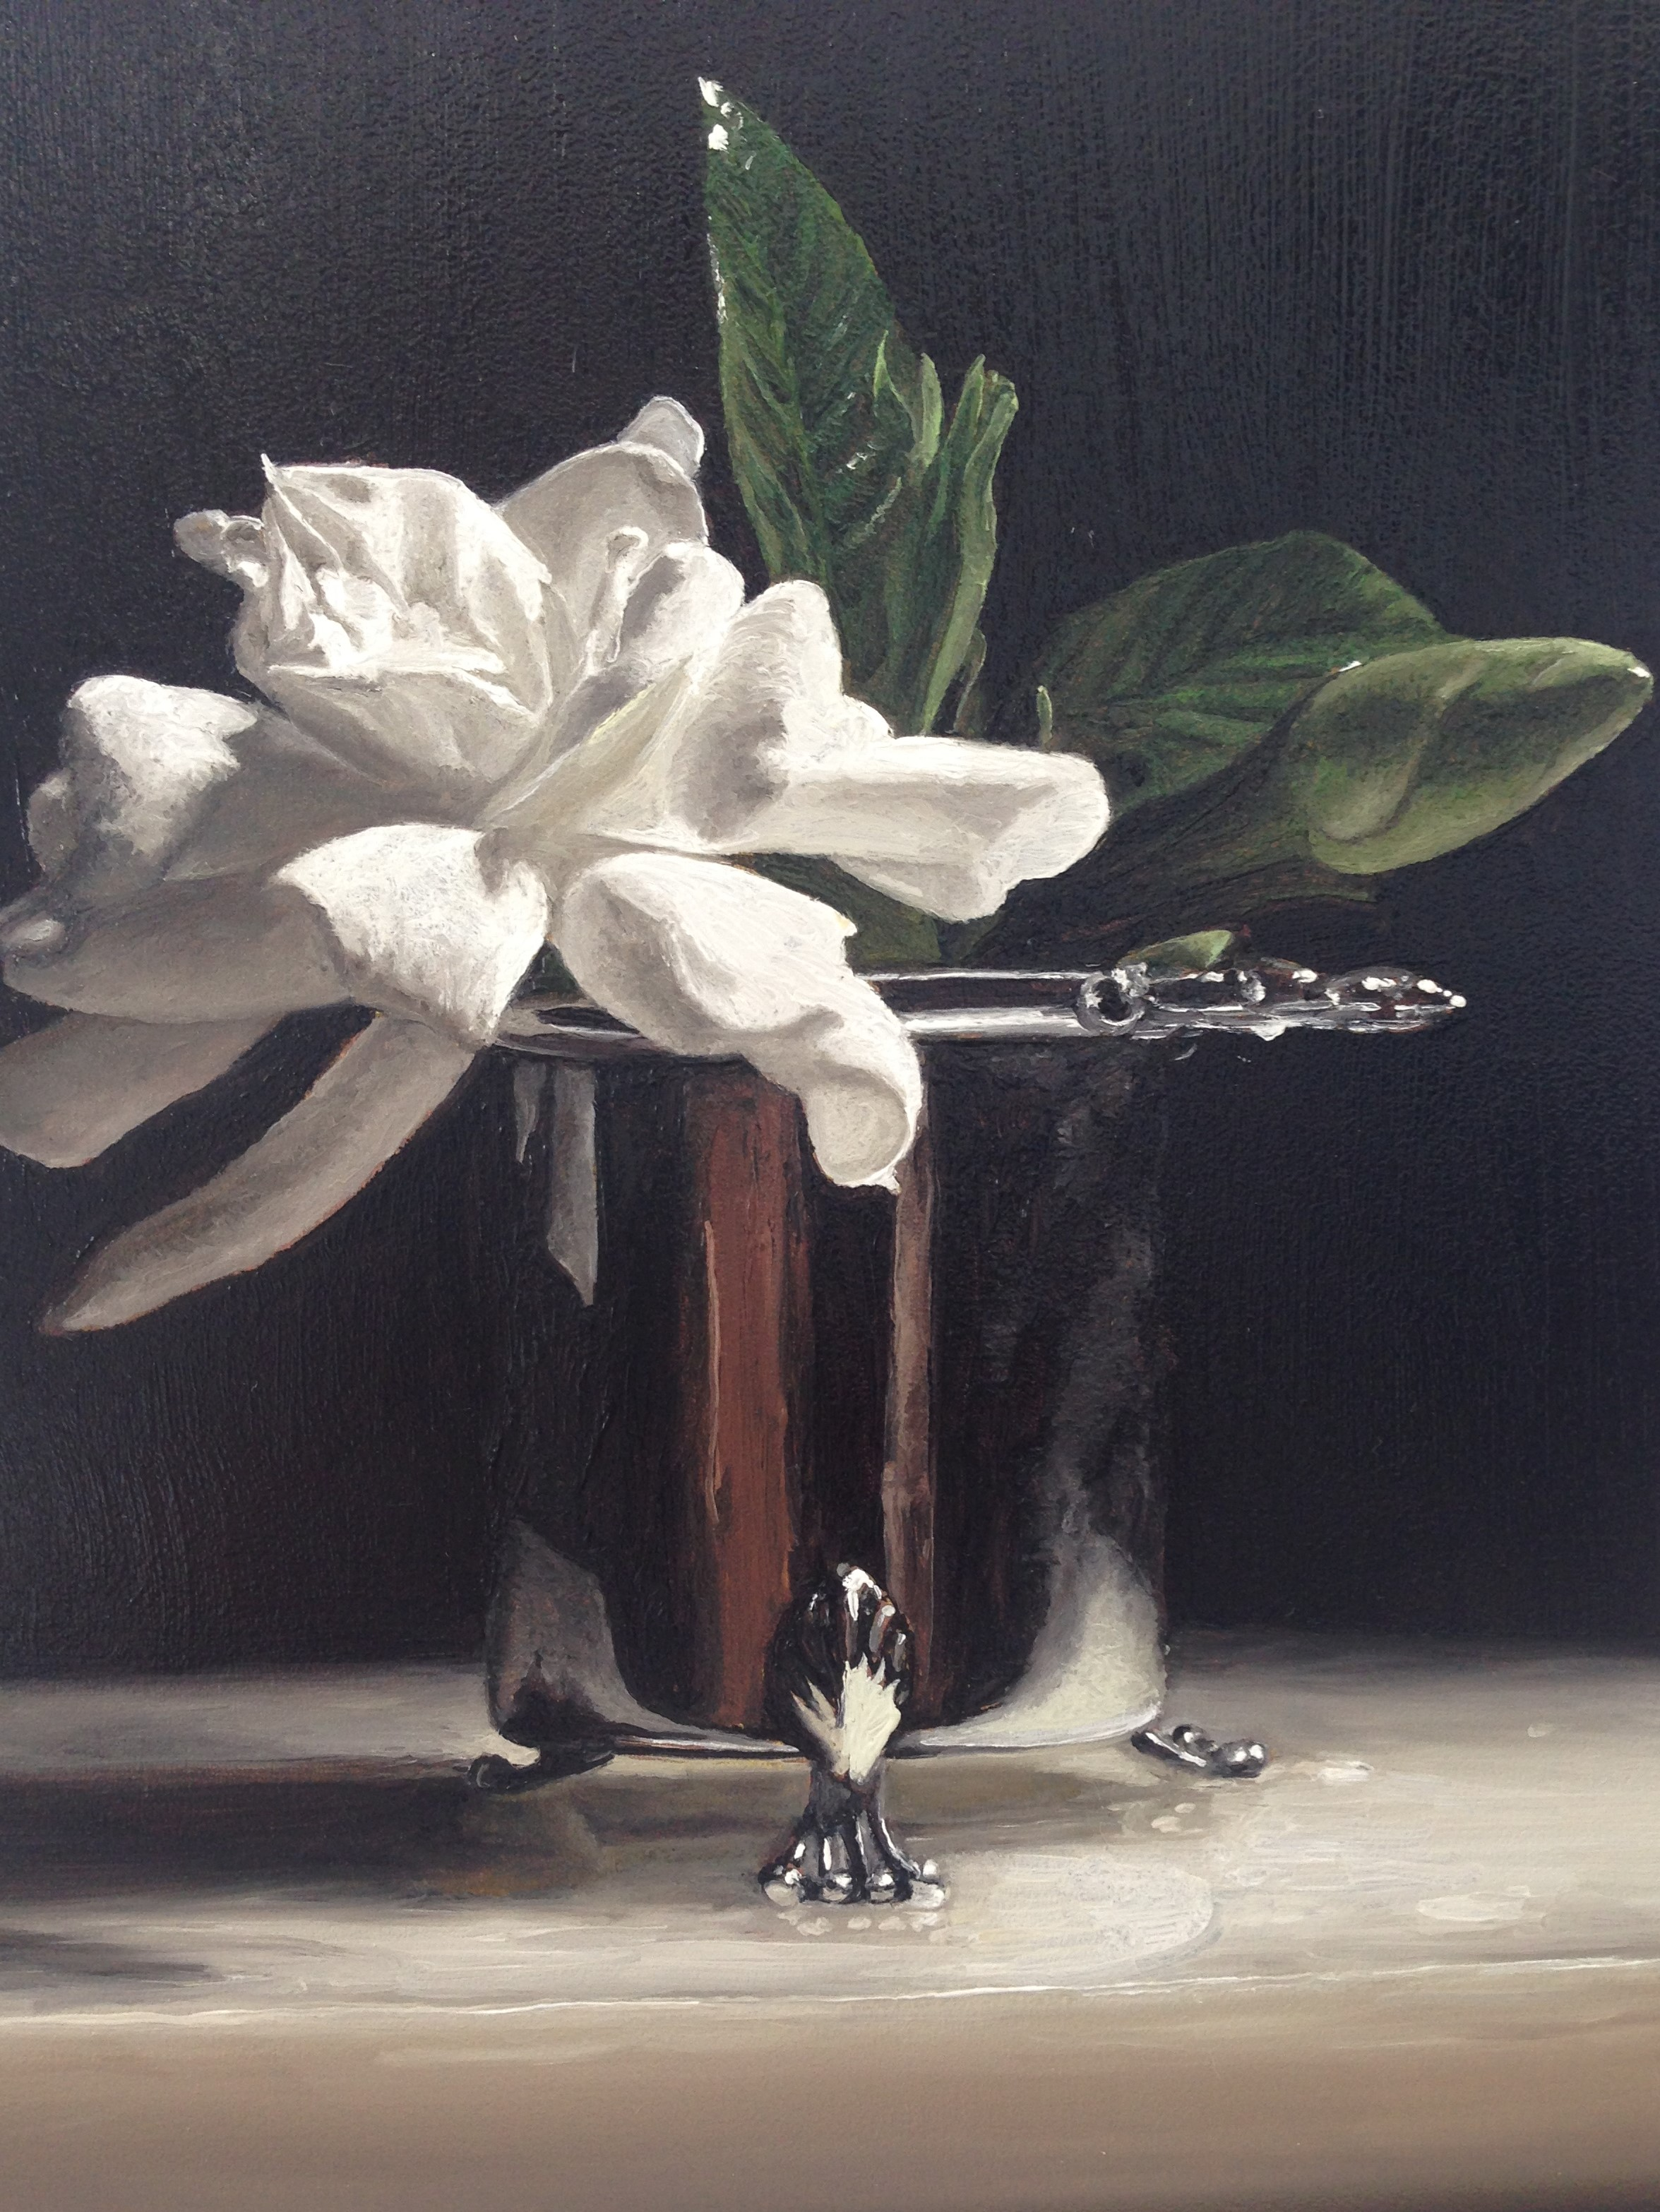 Painting by Patty B. entitled Irene, Gardenias in January, oil on canvas.